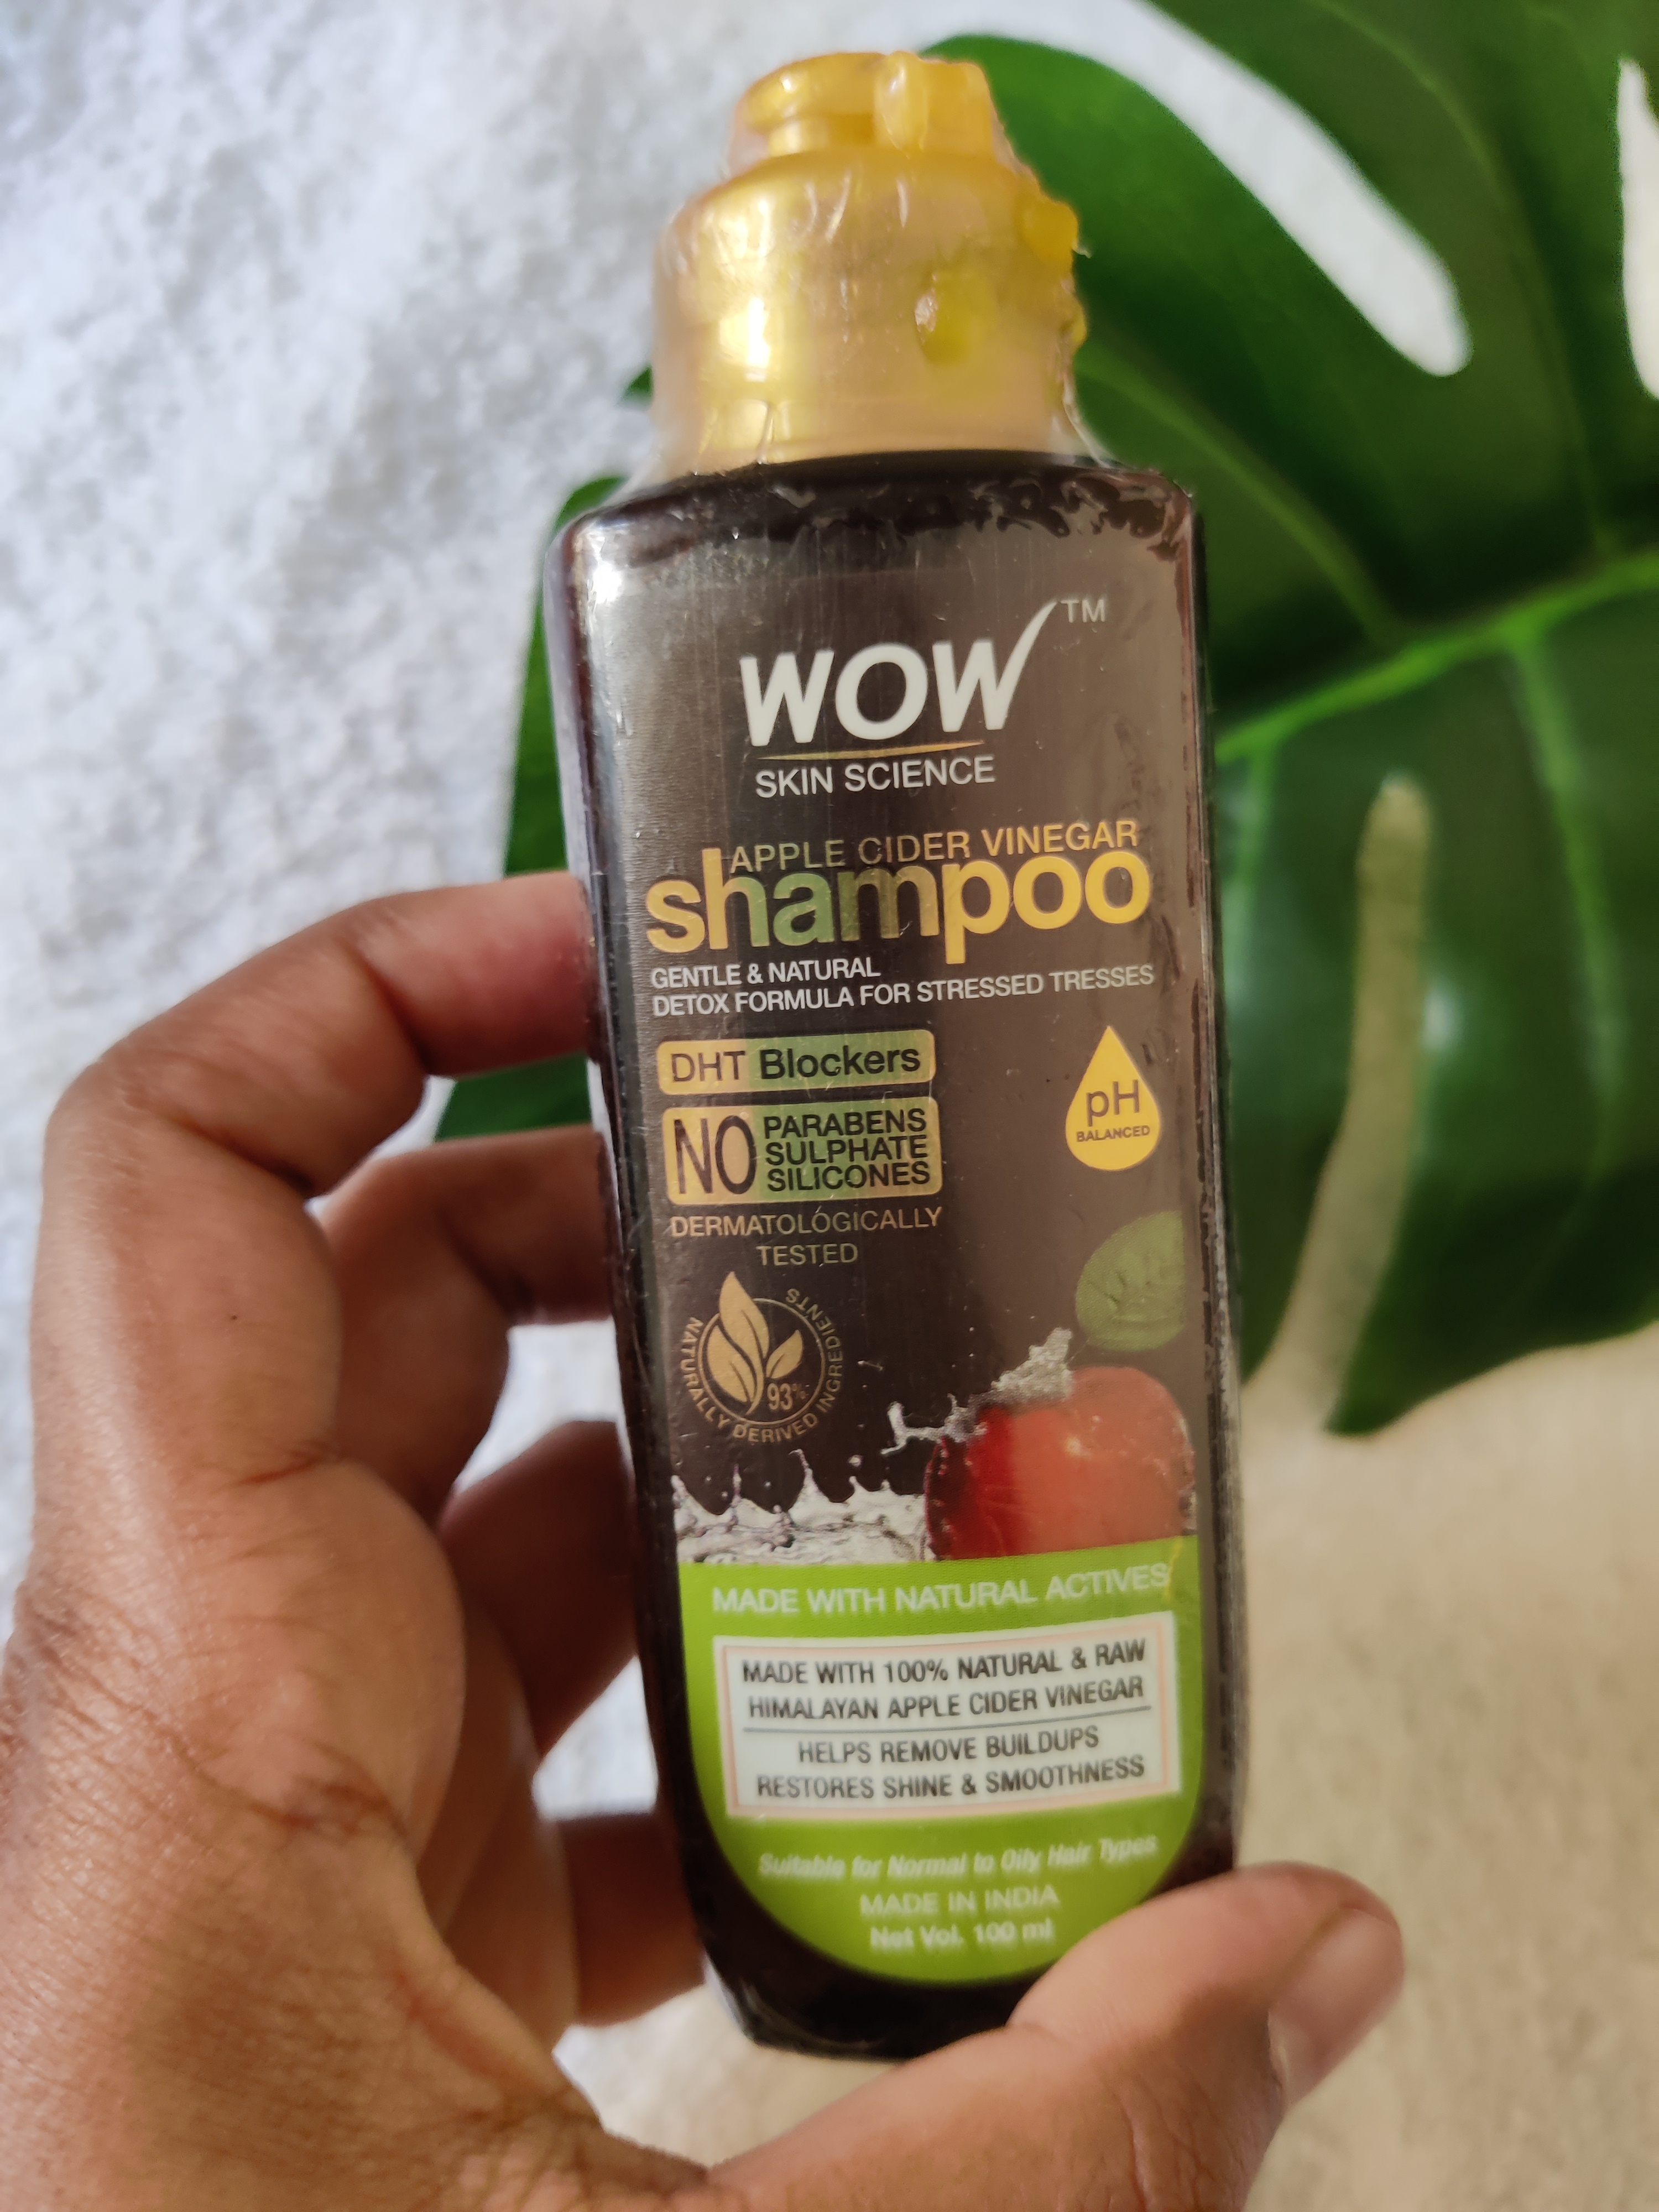 WOW Skin Science Apple Cider Vinegar Shampoo – No Parabens & Sulphate – 300 ml pic 1-Sulphate and Paraben free shampoo-By pooja_md